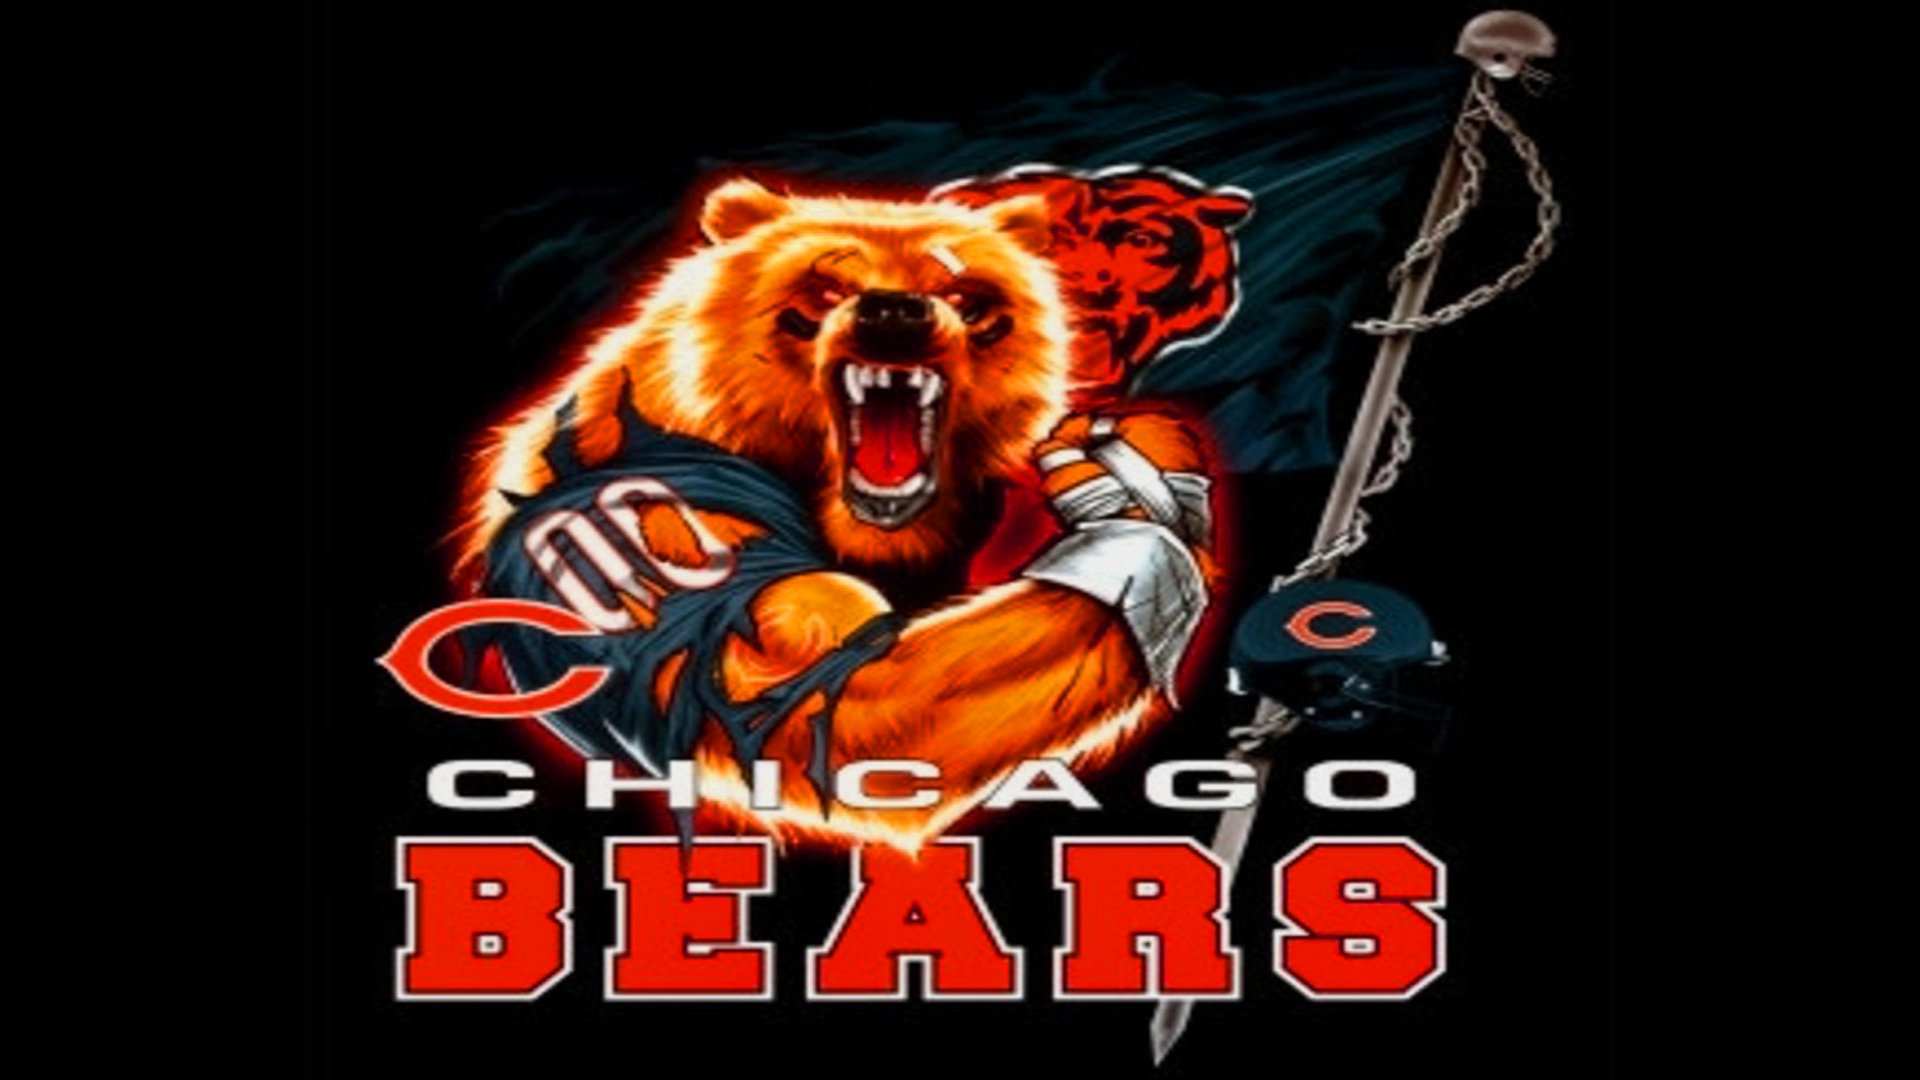 Chicago Bears Wallpaper Desktop h928231 Sports HD Wallpaper 1920x1080